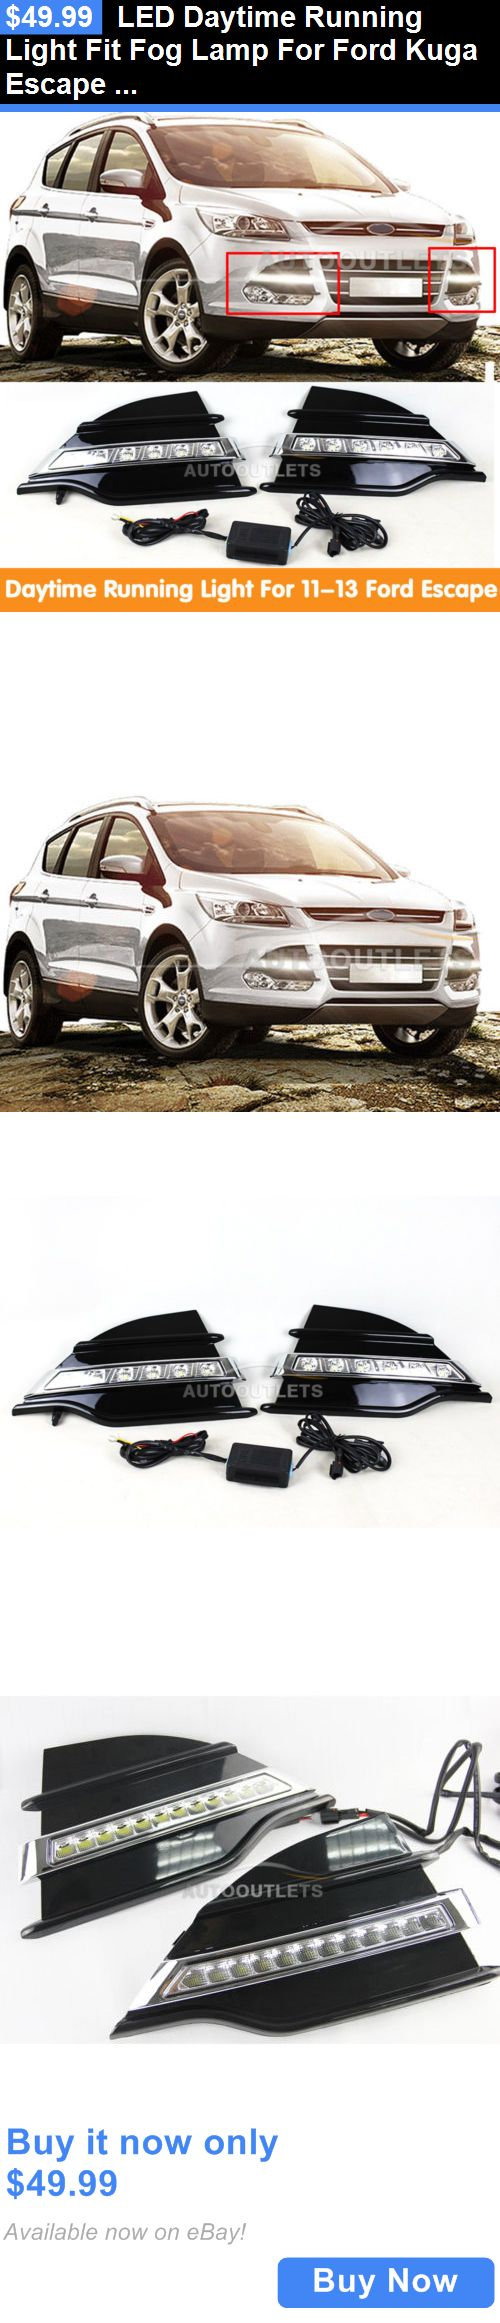 Motors parts and accessories led daytime running light fit fog lamp for ford kuga escape